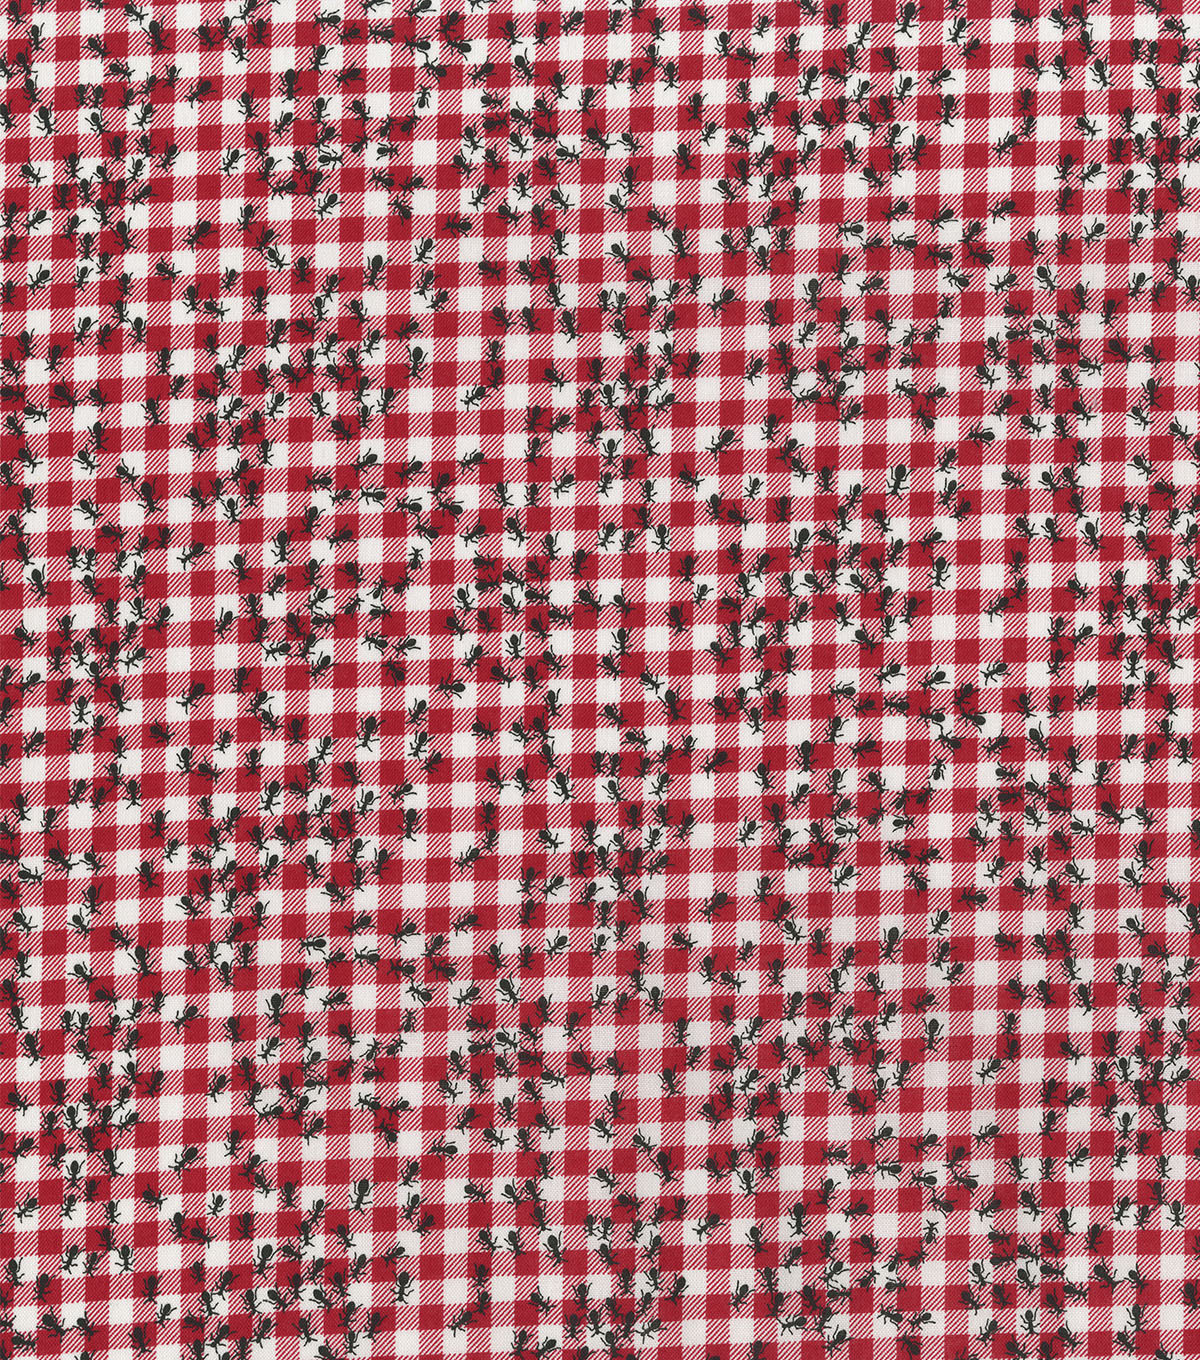 Novelty Cotton Fabric -Ants on Gingham